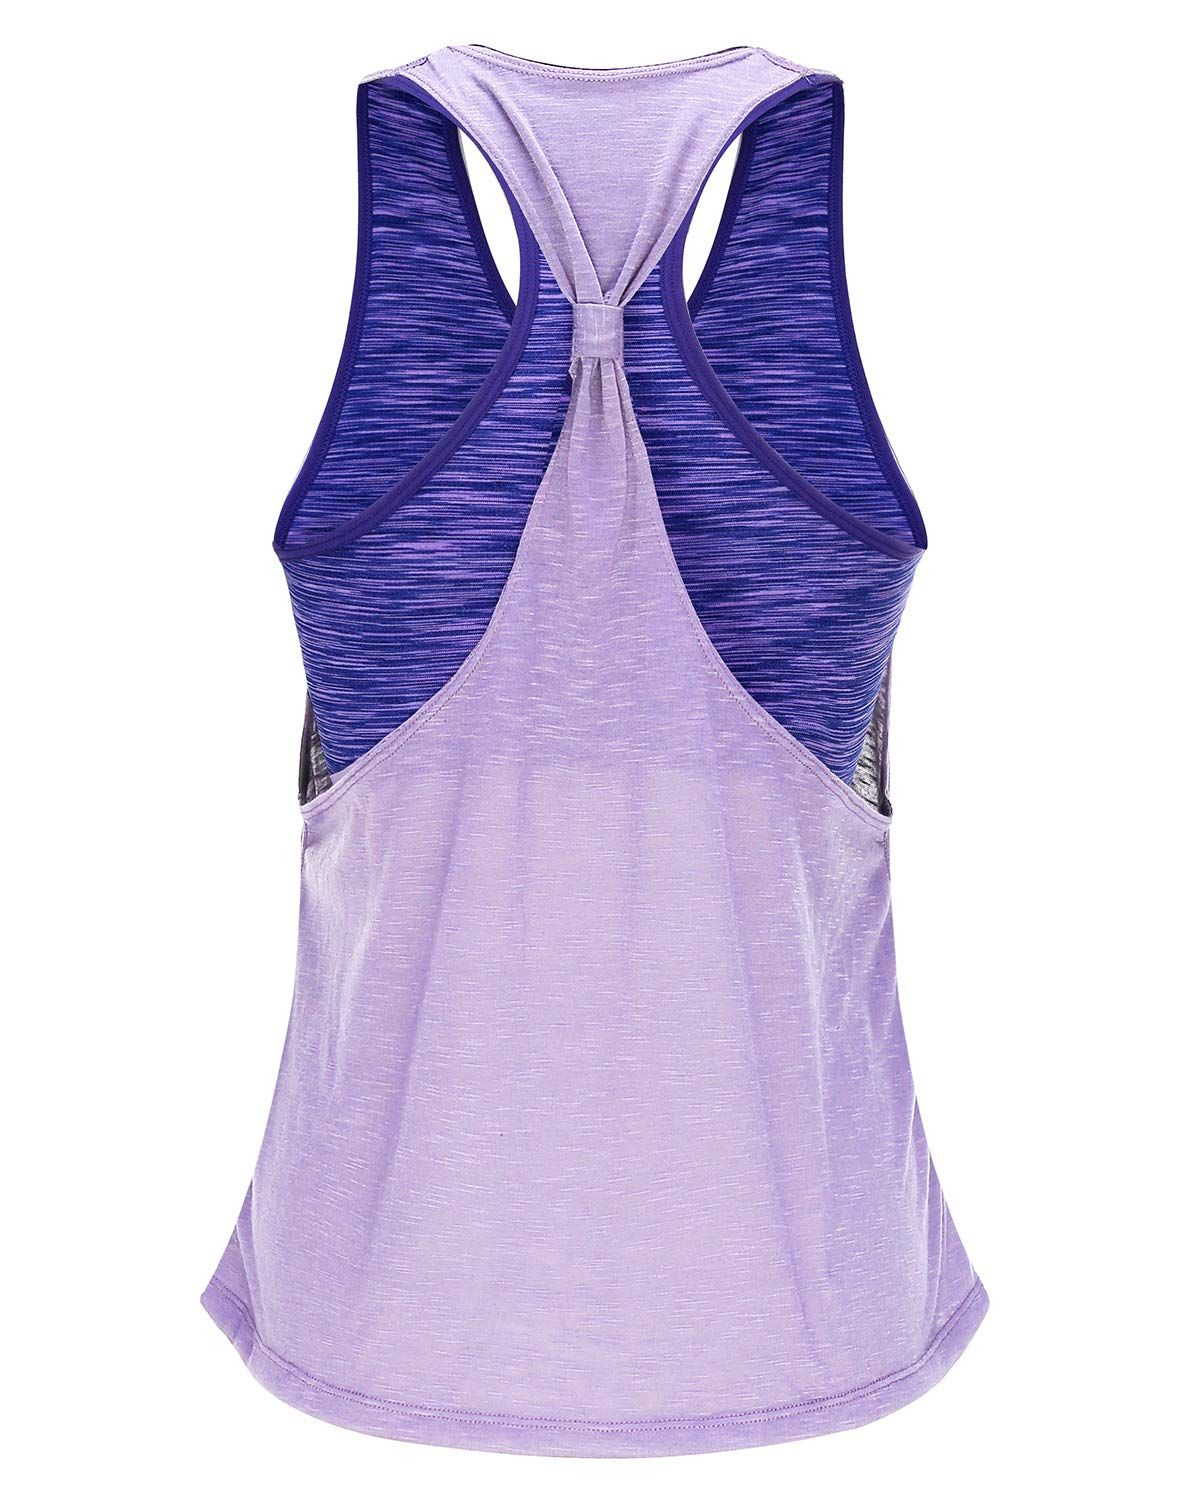 FAFAIR Workout Tank Tops for Women with Built in Bra Tanks Exercise Yoga Gym Shirts